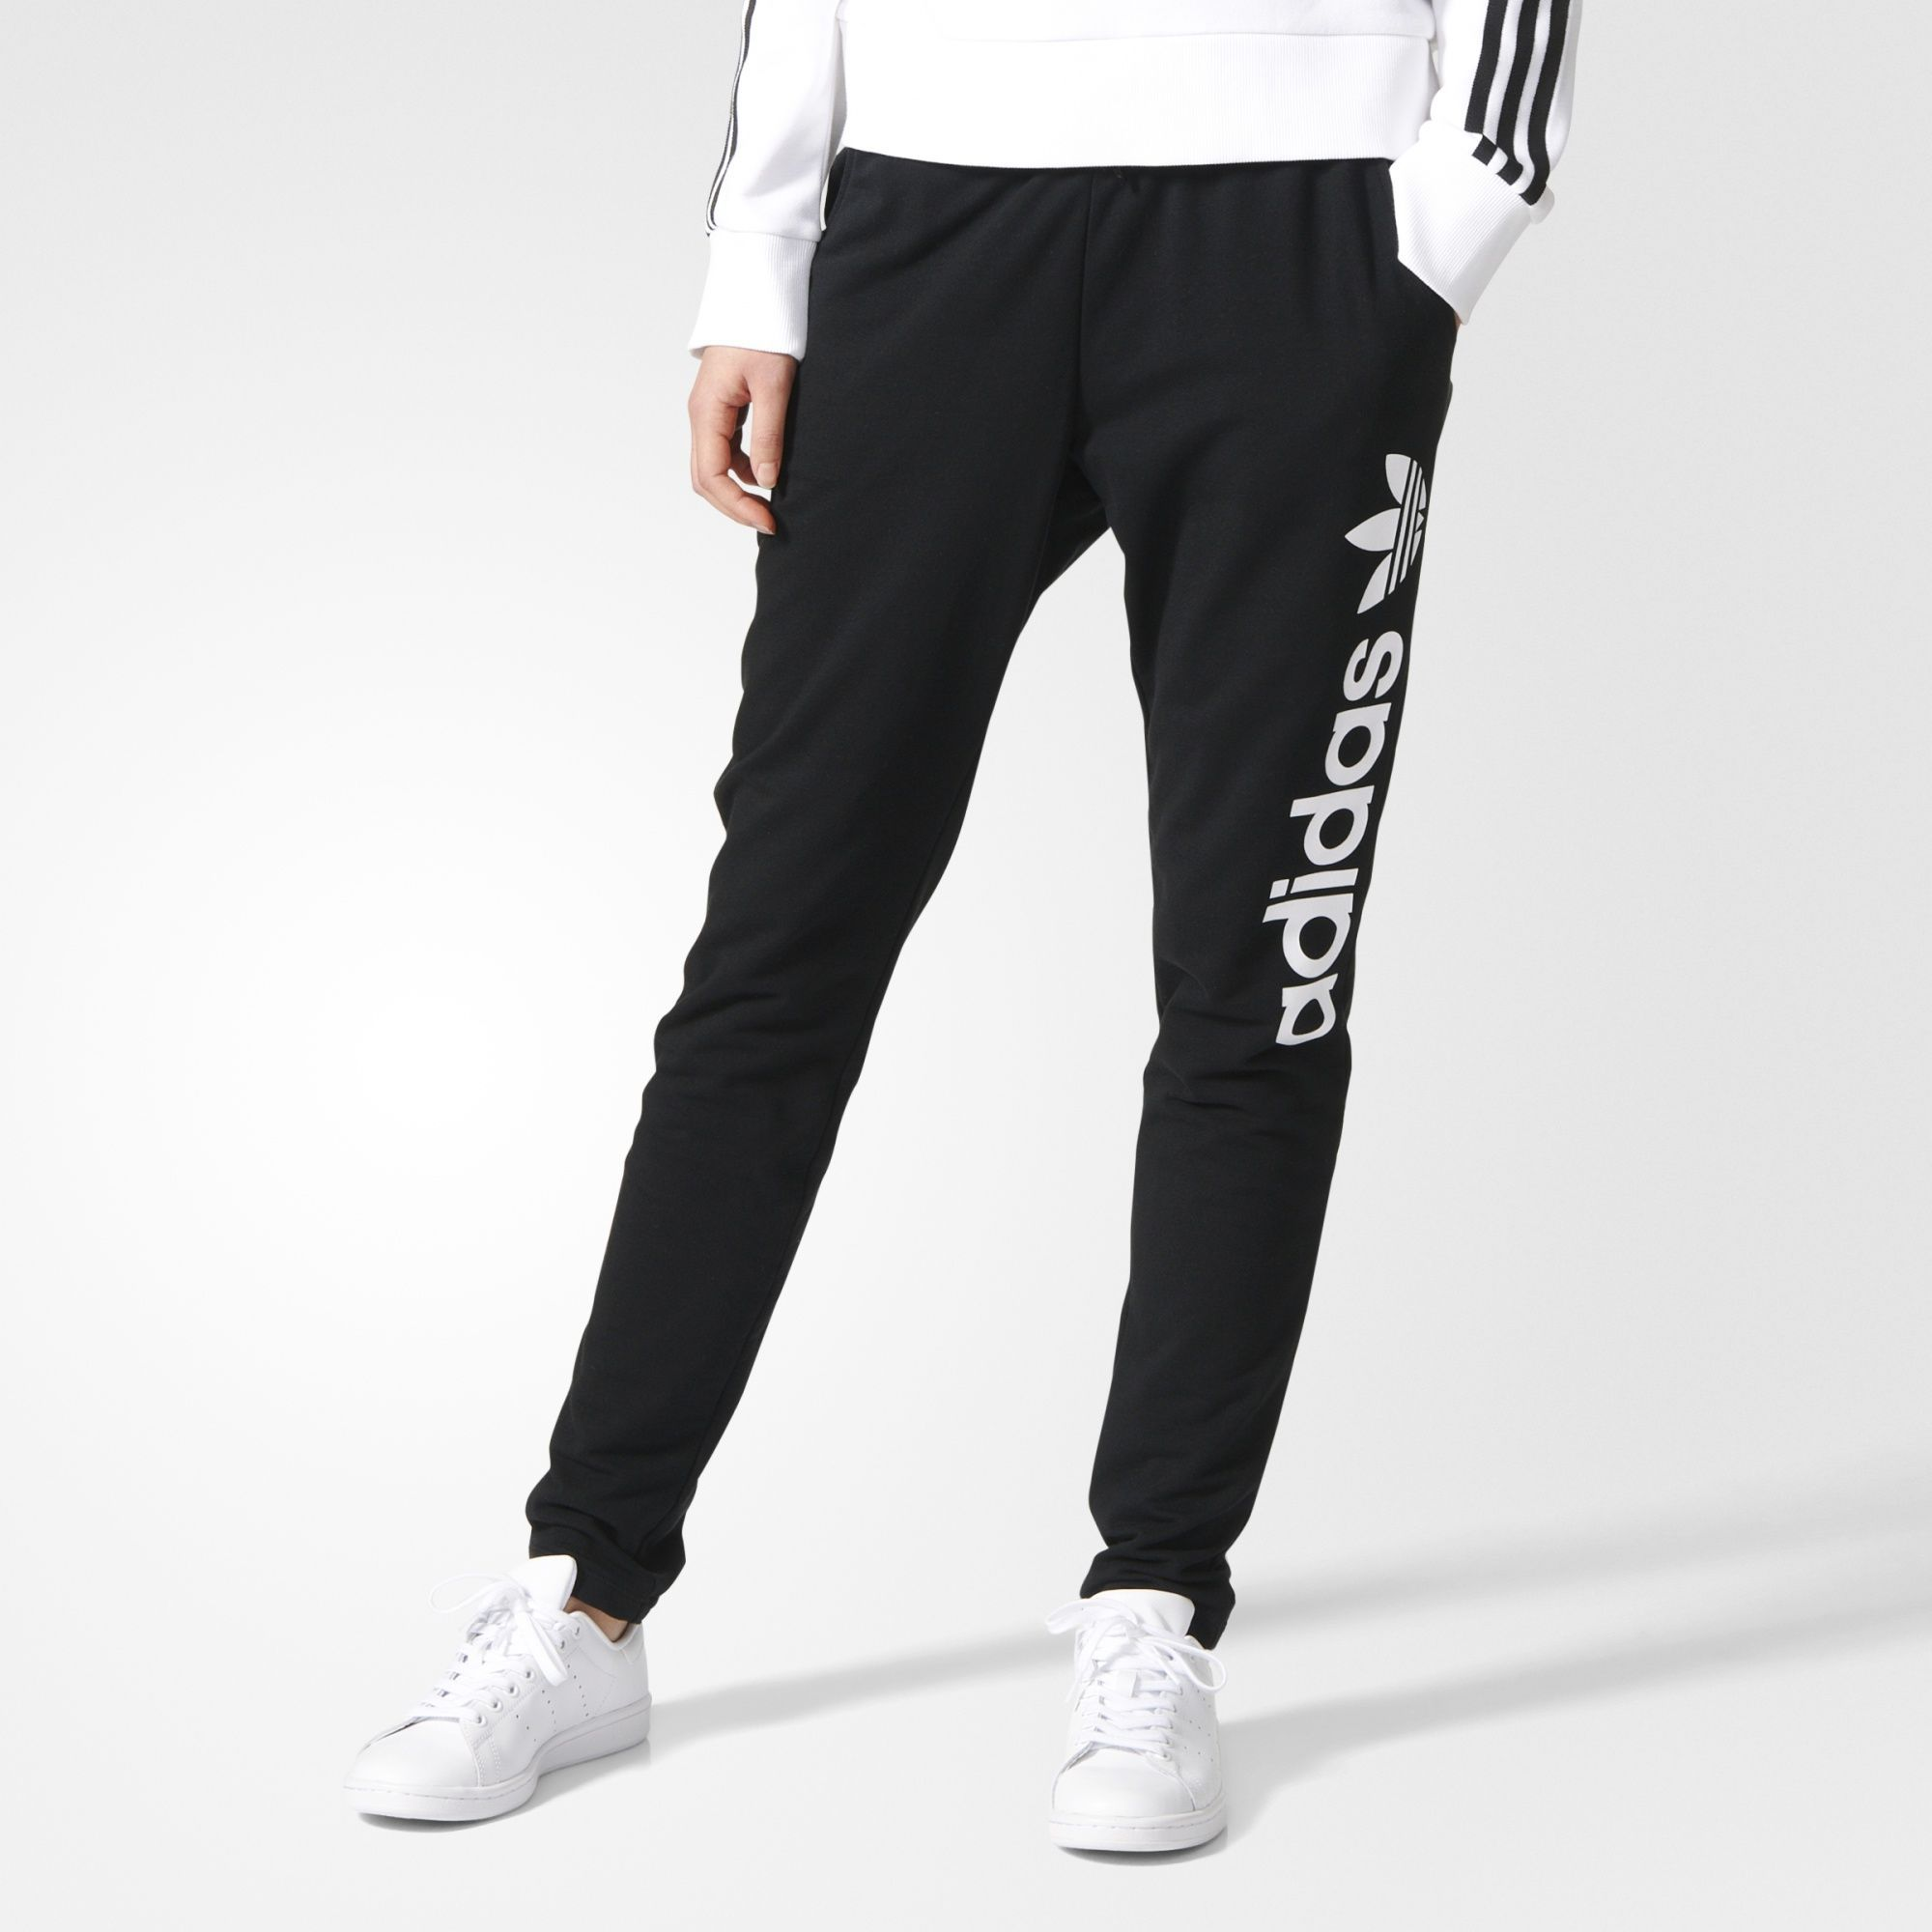 An essential style made with extra-soft French terry, these women's track  pants have a modern tapered shape. Lightweight and soft, they have a bold  linear ...